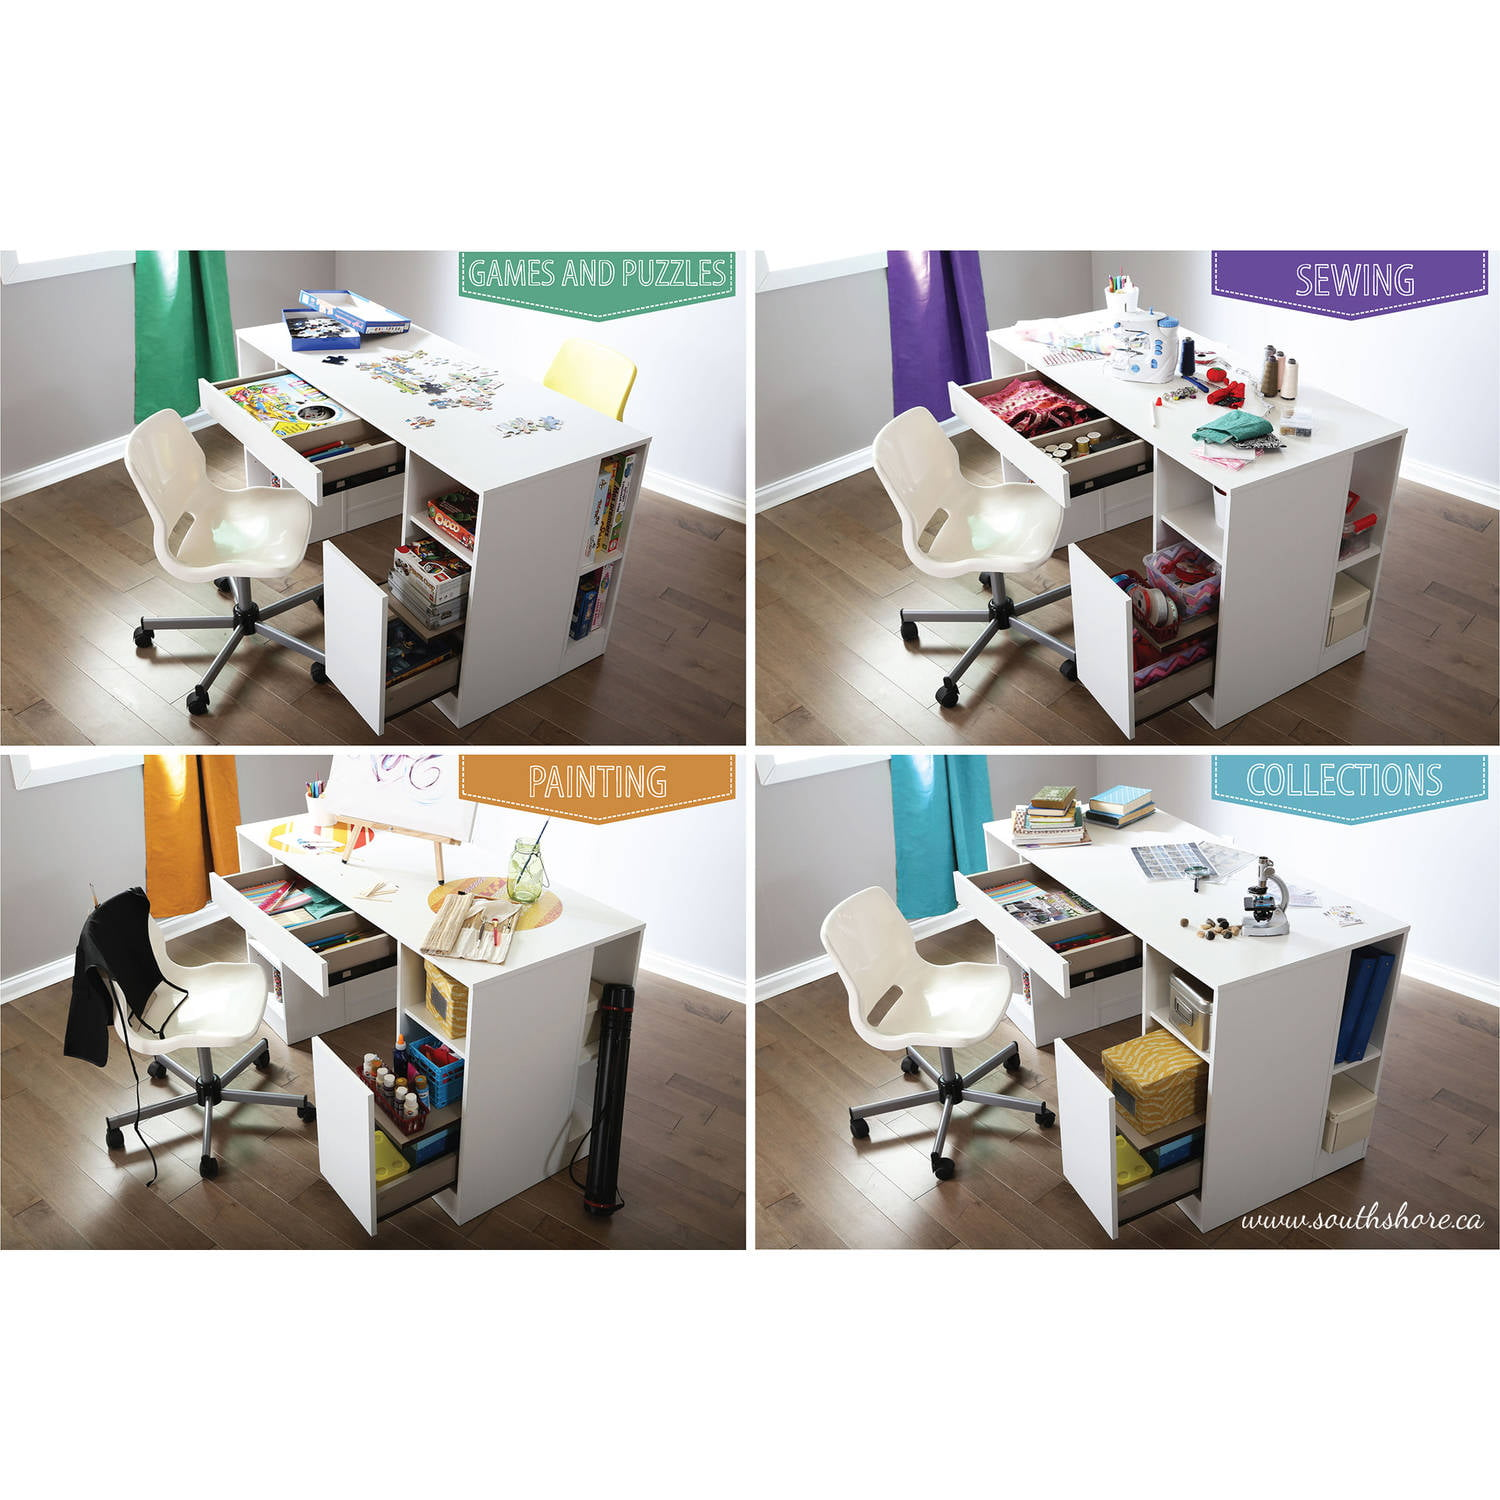 amazing south shore crea collection craft table white #1 - Walmart.com